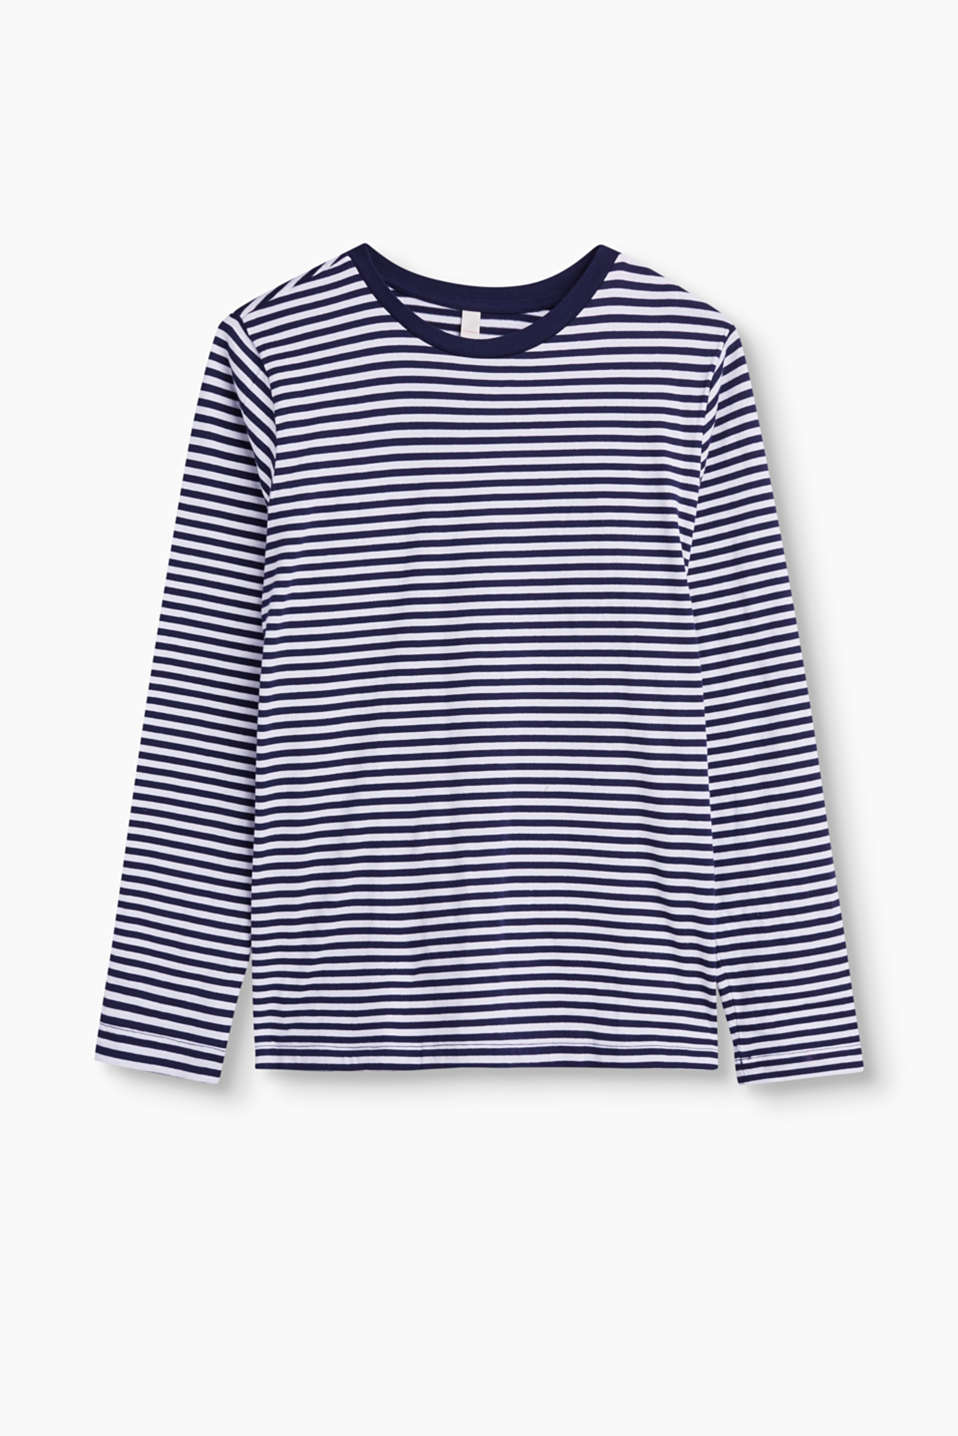 Esprit - Striped long sleeve top in 100% cotton